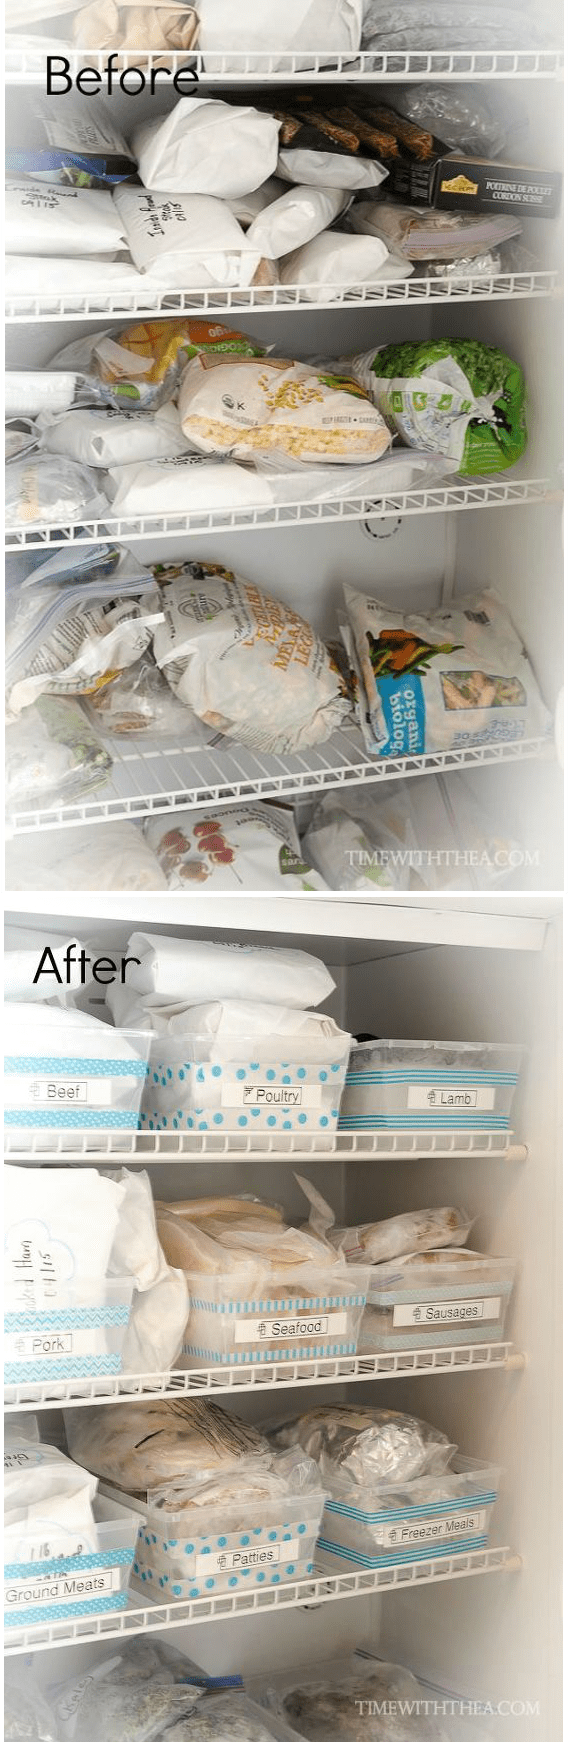 5.Simphome.com Freezer Organizer Project Idea